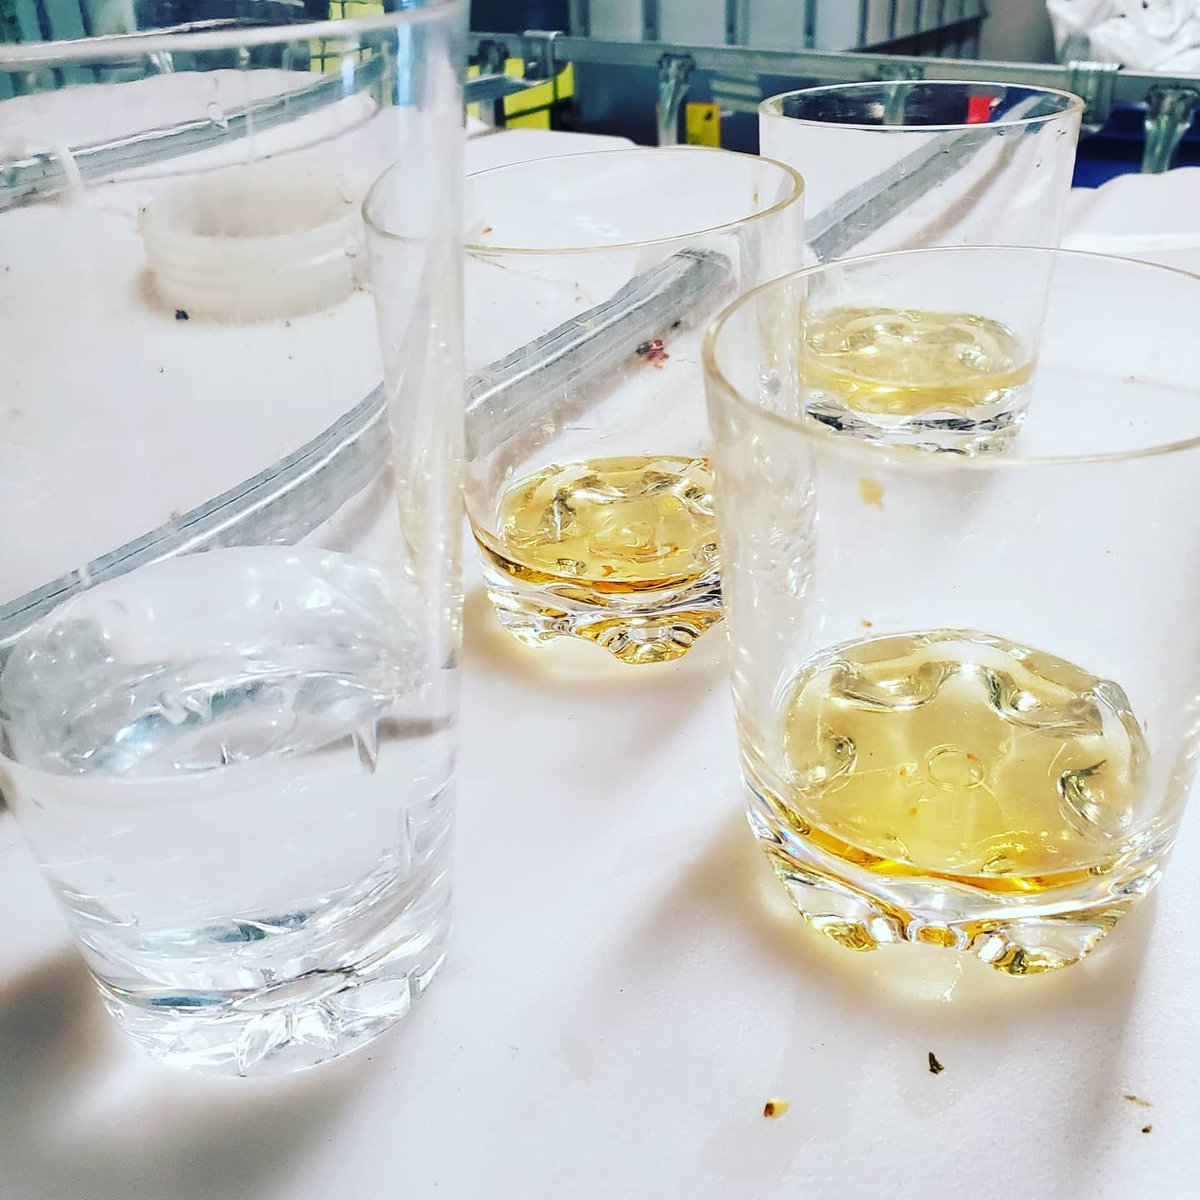 Giddy up! Started the day with a bang! Taste tested batches of pepper vodka first thing this morning before we pressed them! #doundrins #Cheers #madisonwi #Madison #Wisconsin @WIDistributors #distillery #distilling #craftspirits #peppervodka #vodka #alcohol #madisonwisconsin https://t.co/evQWwKzkkt